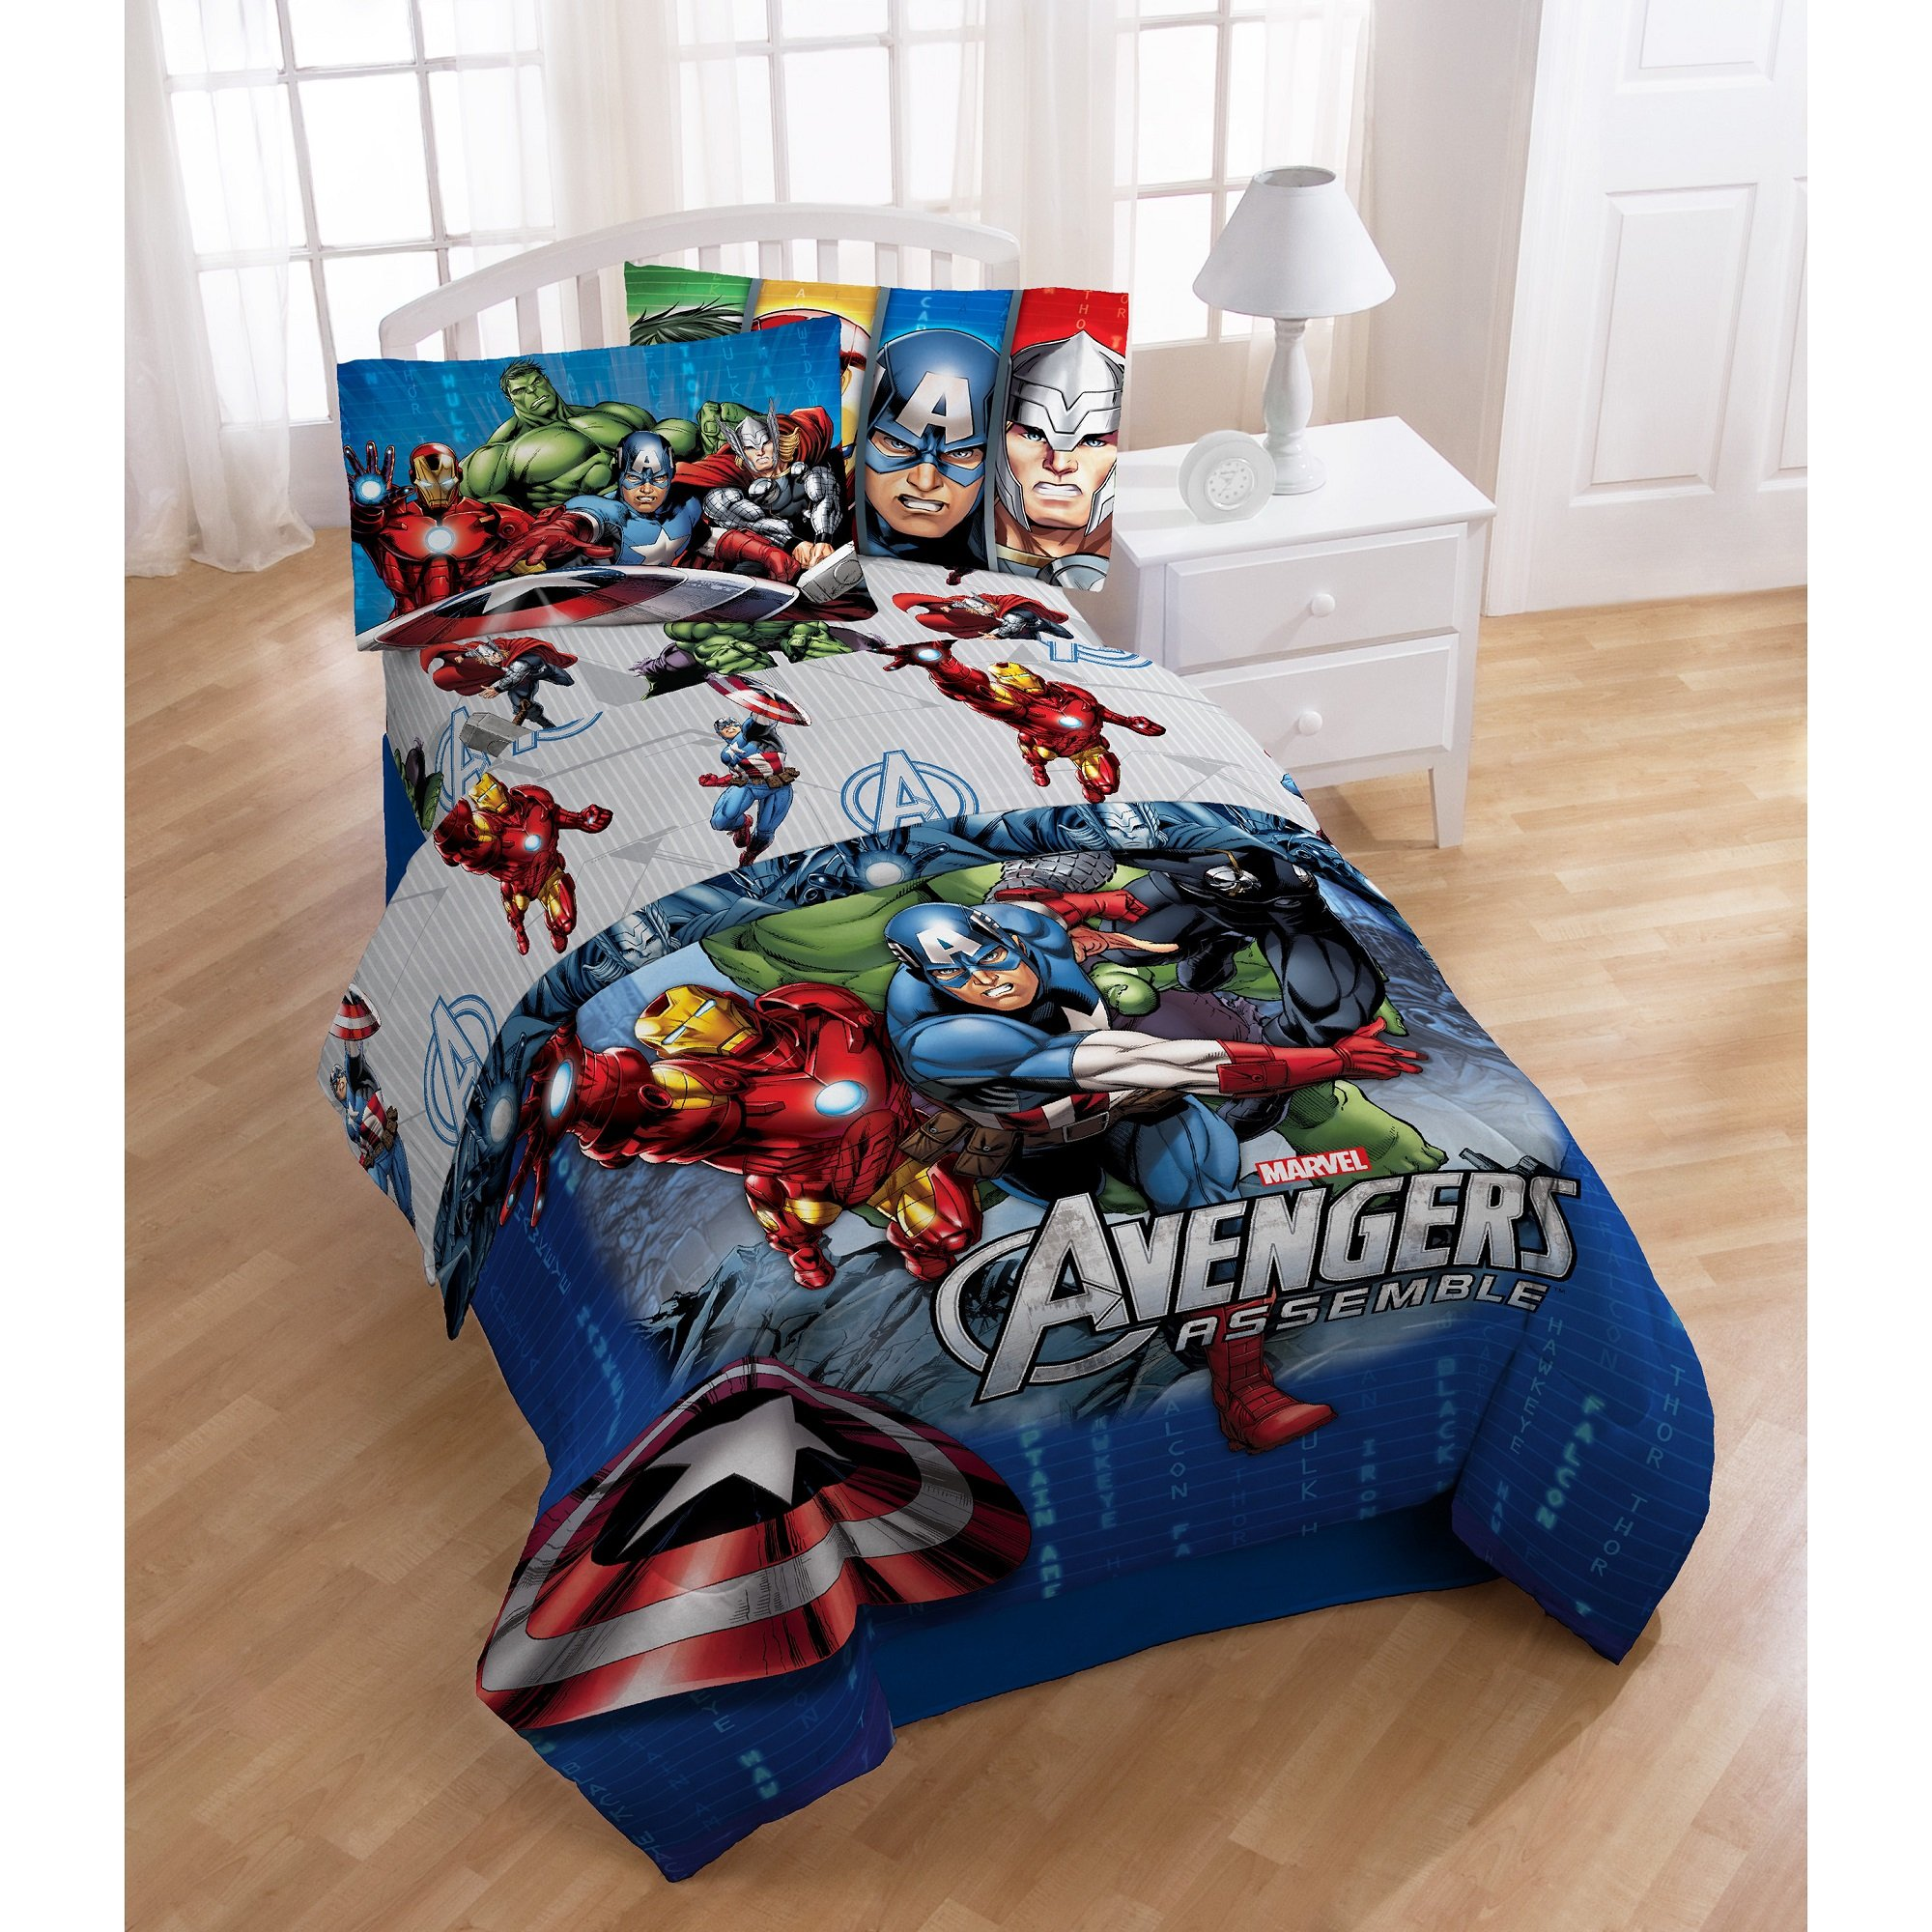 4 Piece Marvel Superhero Avengers Halo Patterned Reversible Kids Sheet Set Twin Size, Featuring Ironman Hulk Captain America Thor Bedding, Superheroes Bed In A Bag Modern Stylish Design, Unisex, Blue